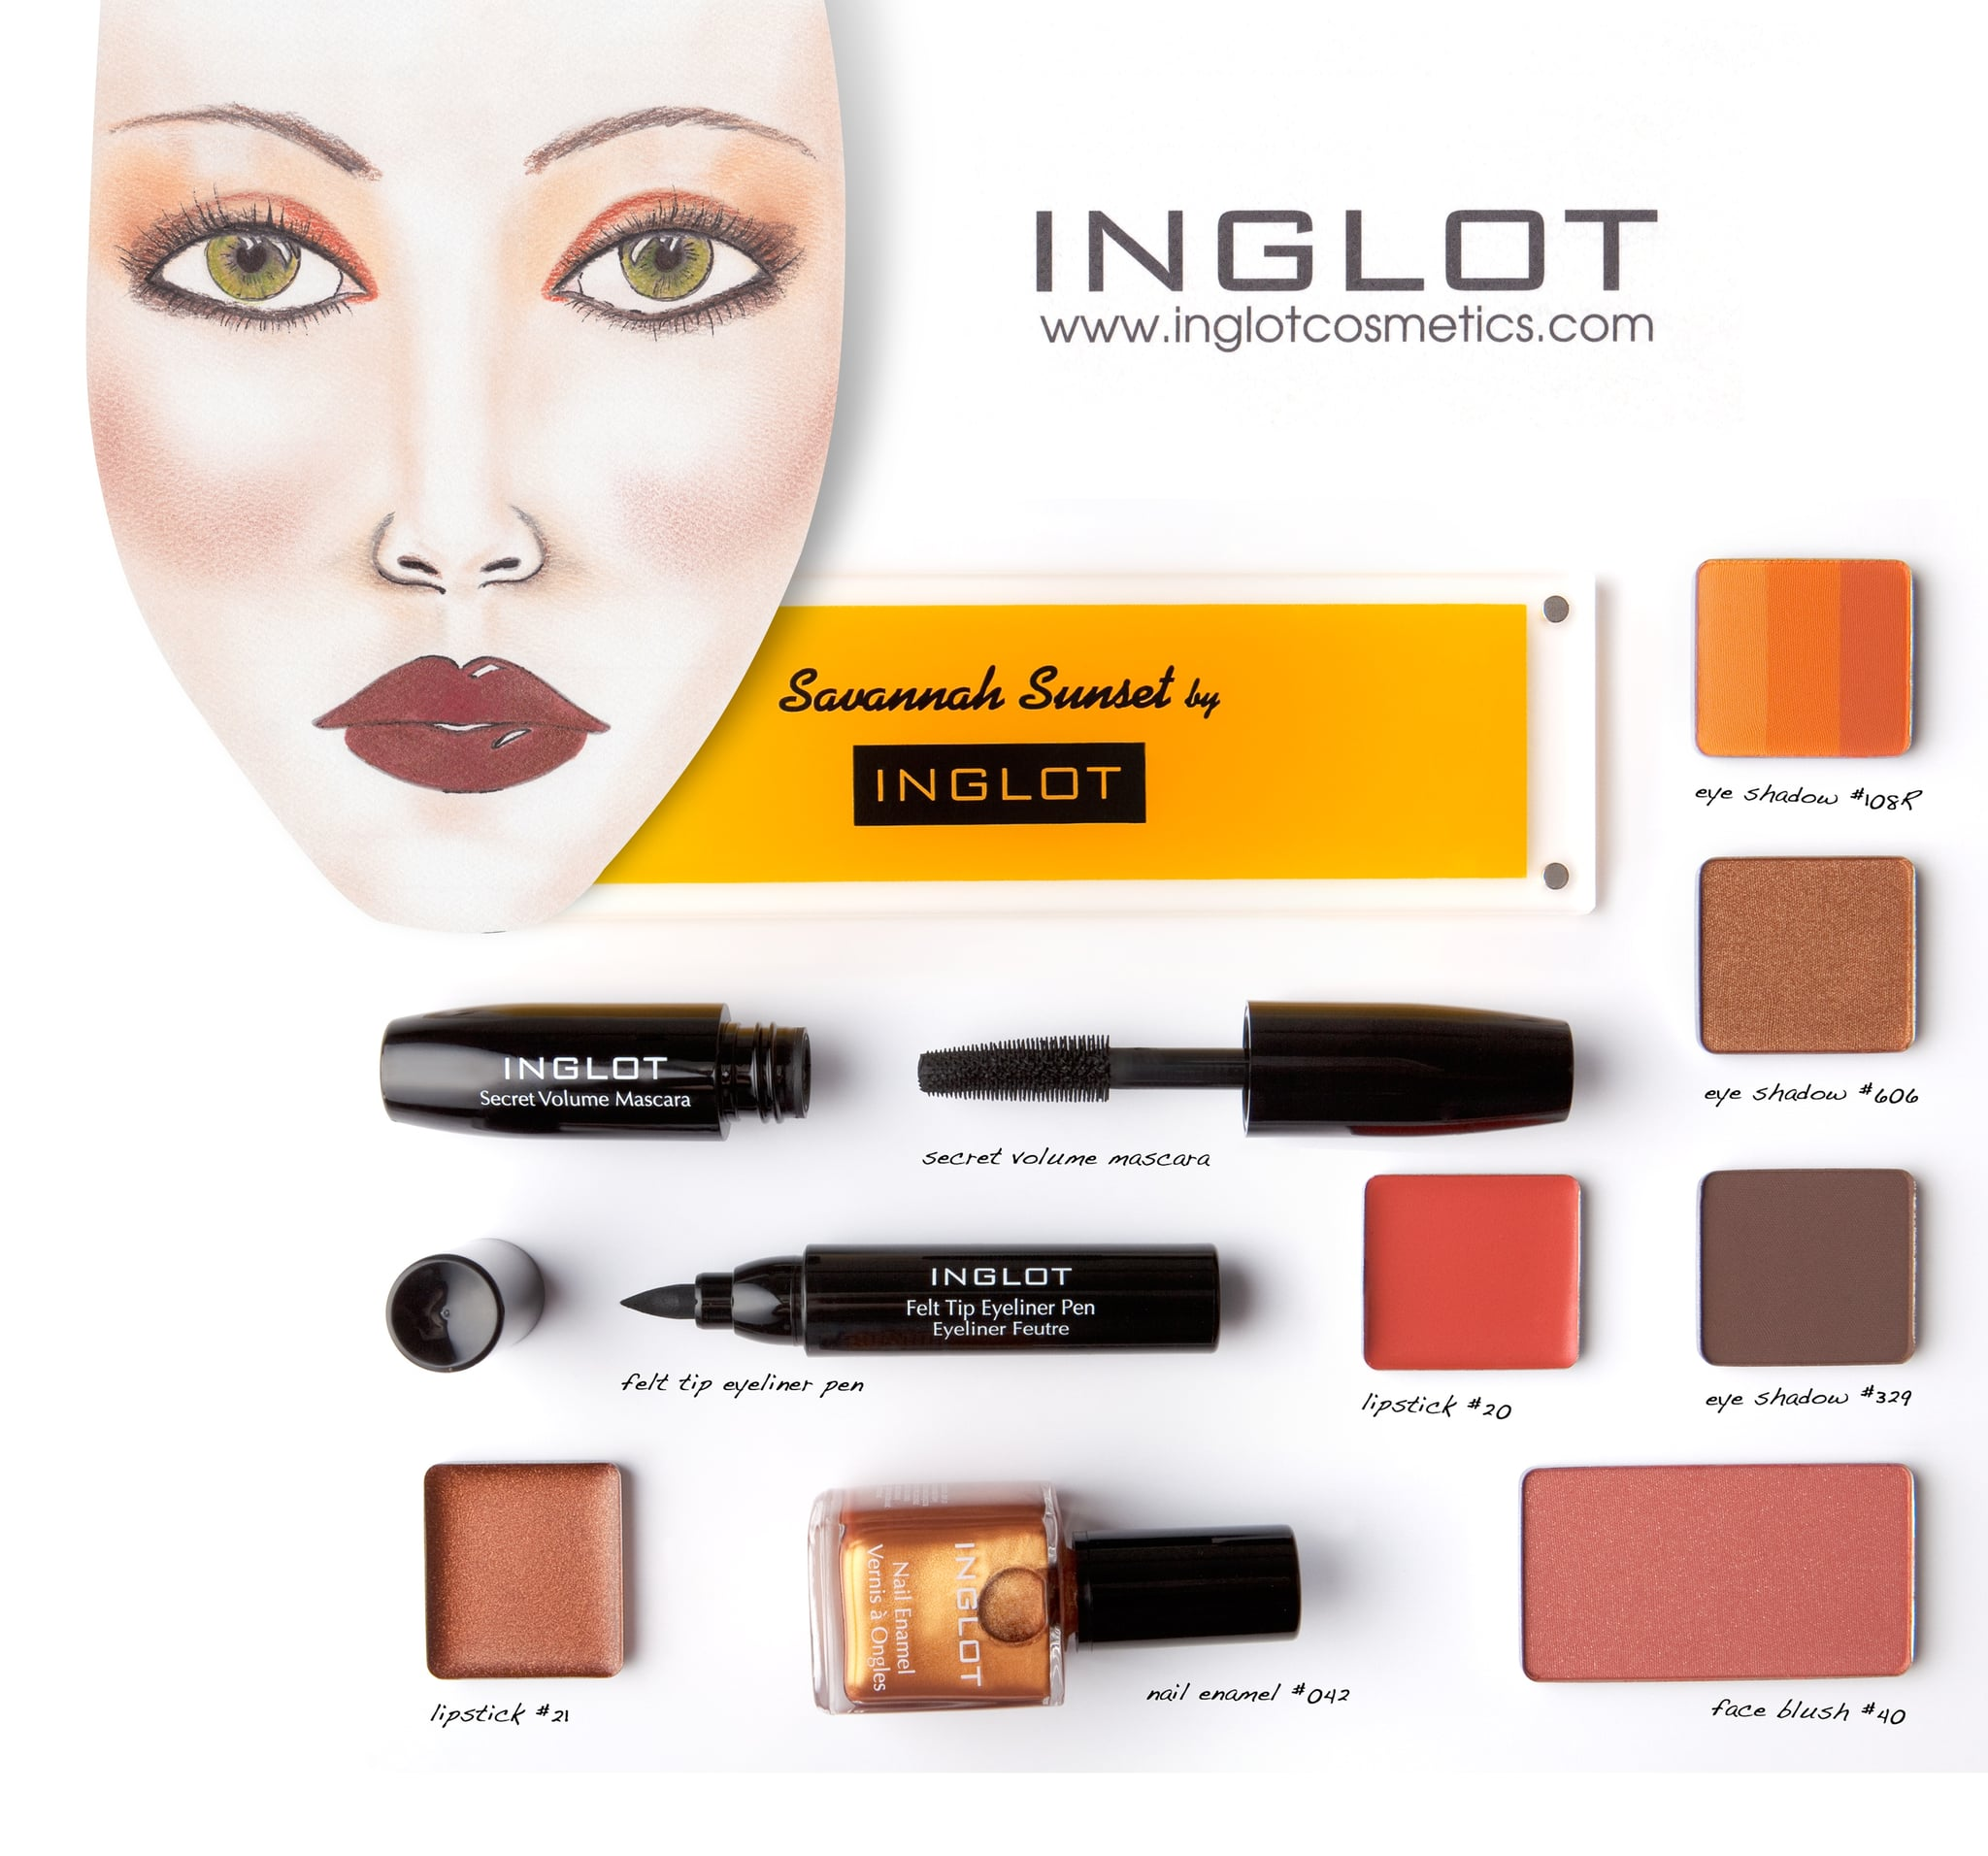 Inglot Savannah Sunset Collection